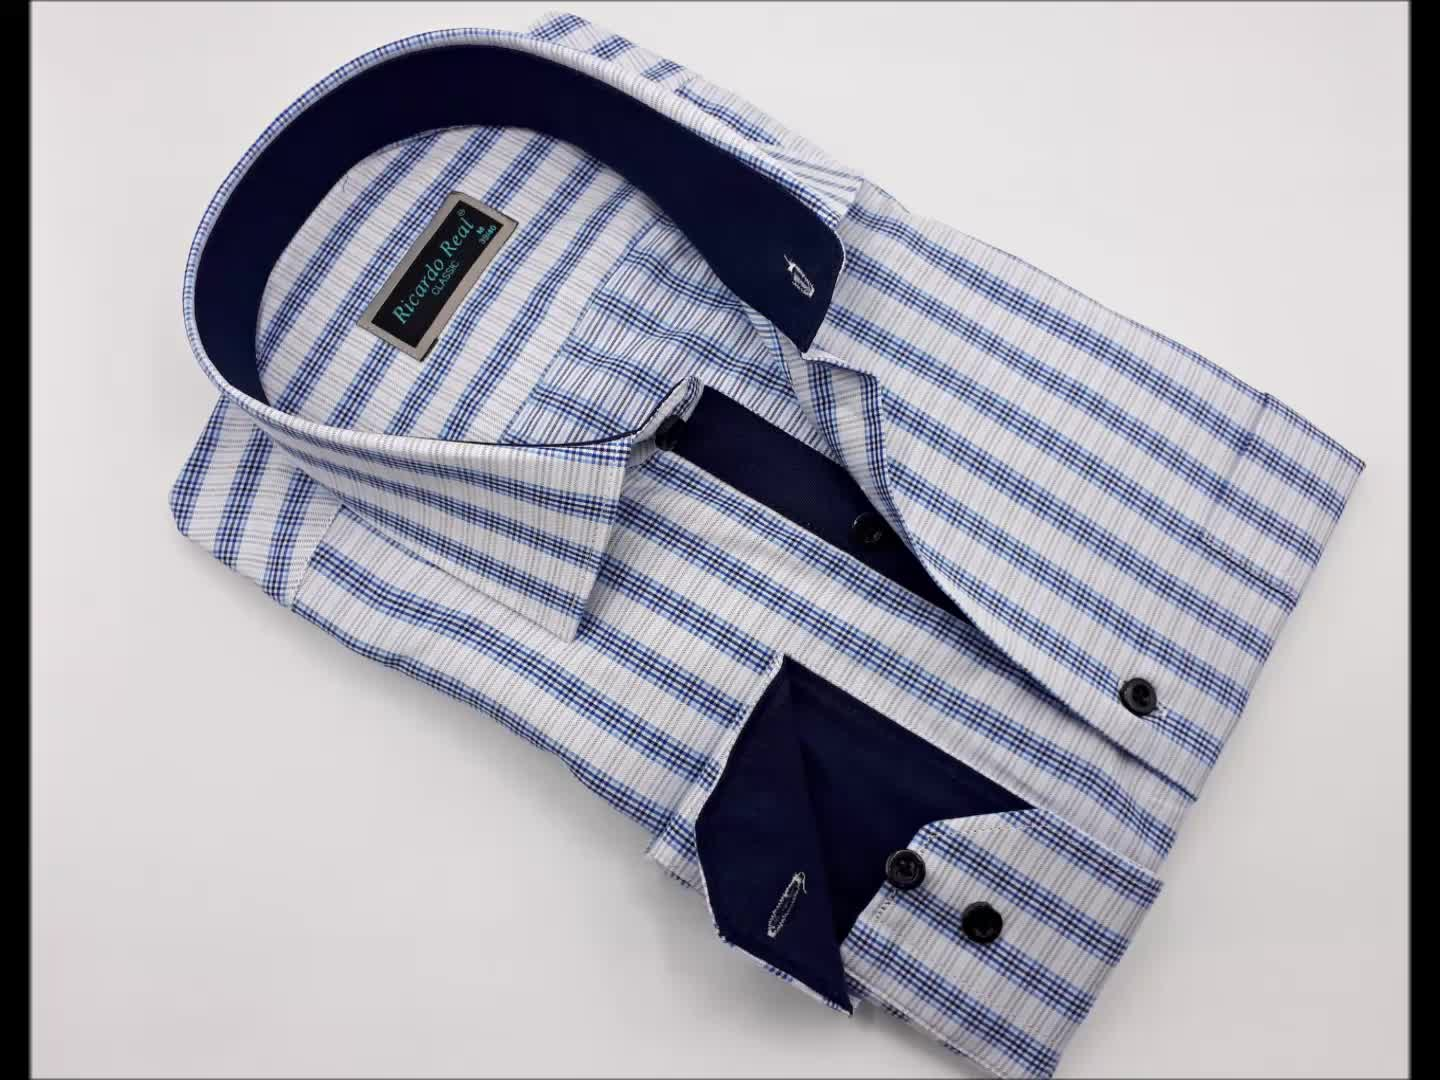 Fashionable Wholesale Turkish Cotton Shirts Men's Dress Shirt